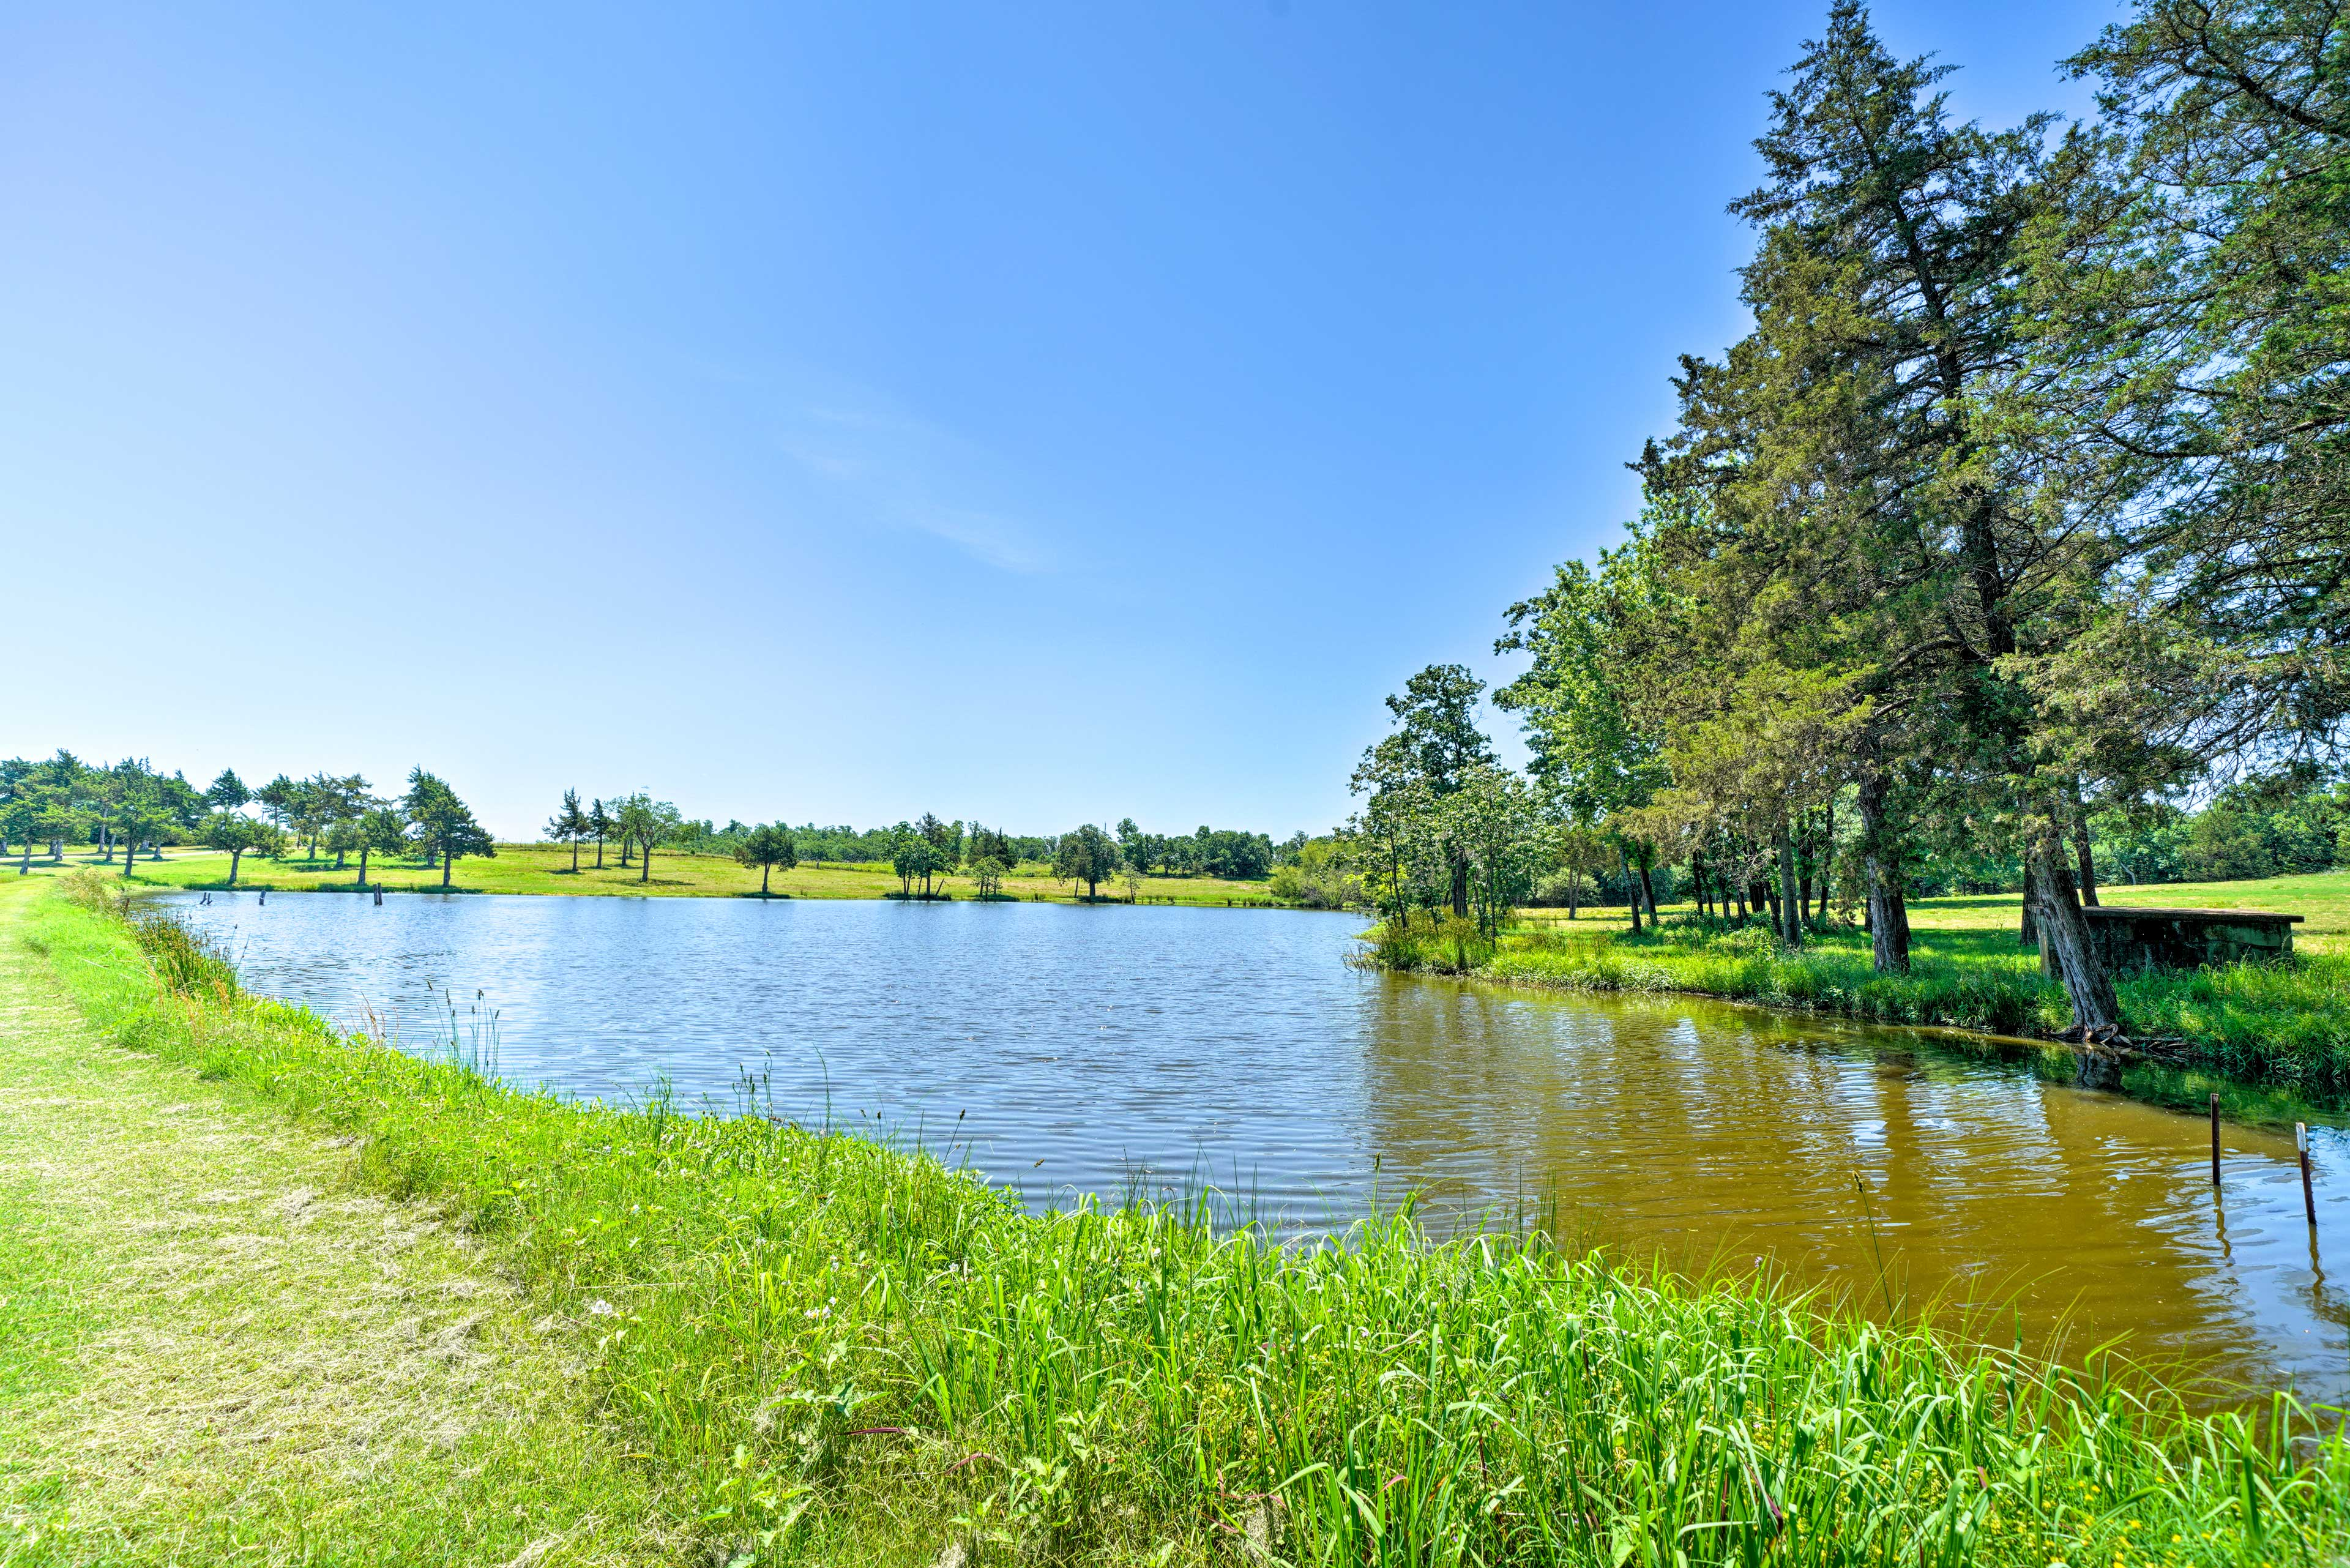 The property boasts 2 ponds stocked with fish and endless blue sky views.